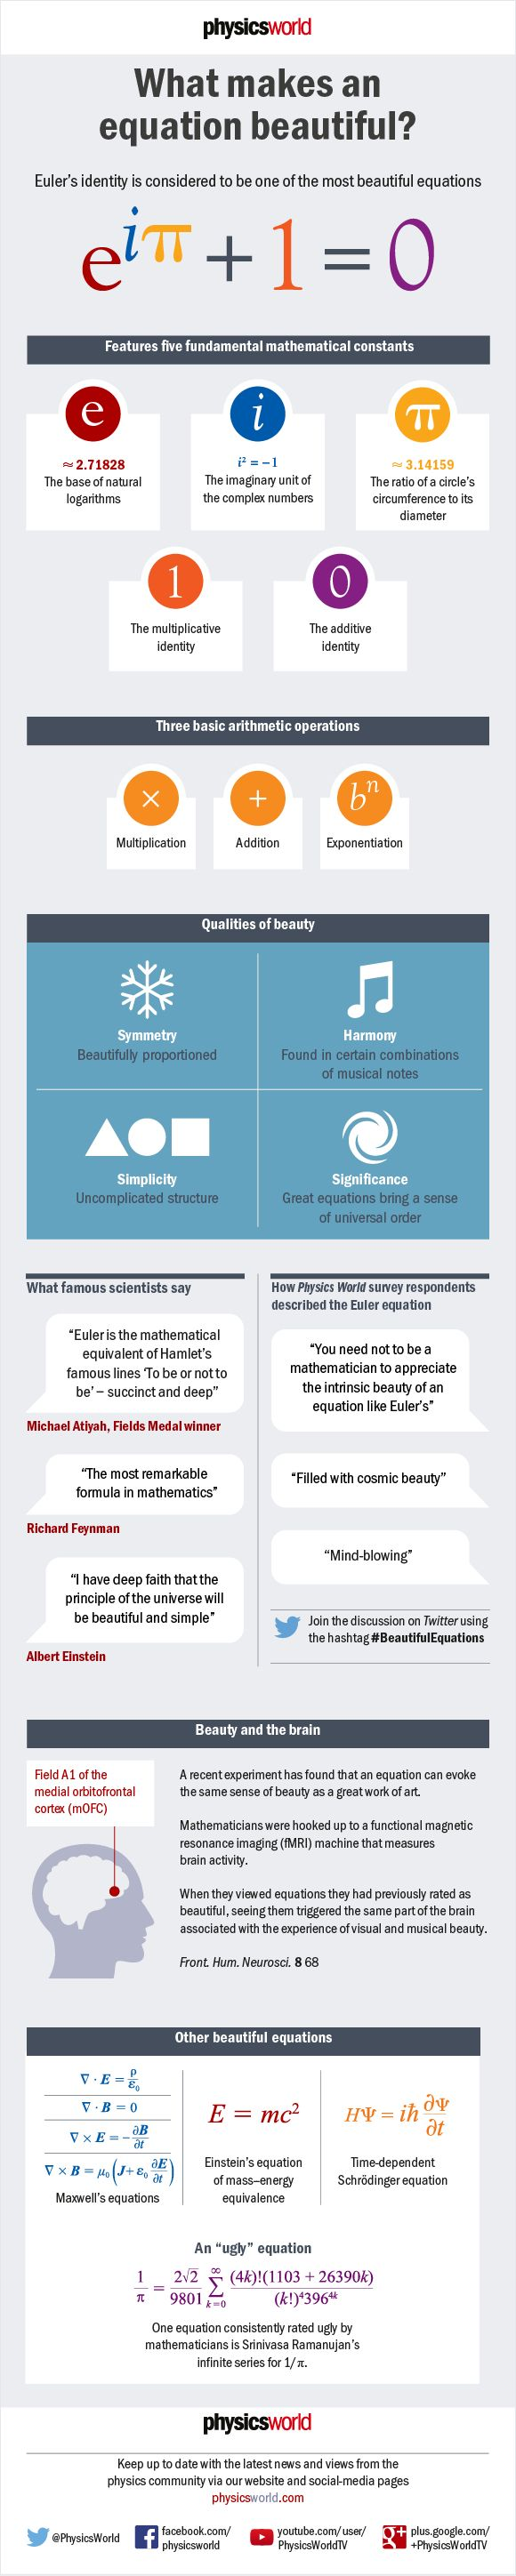 Infographic about beautiful equations